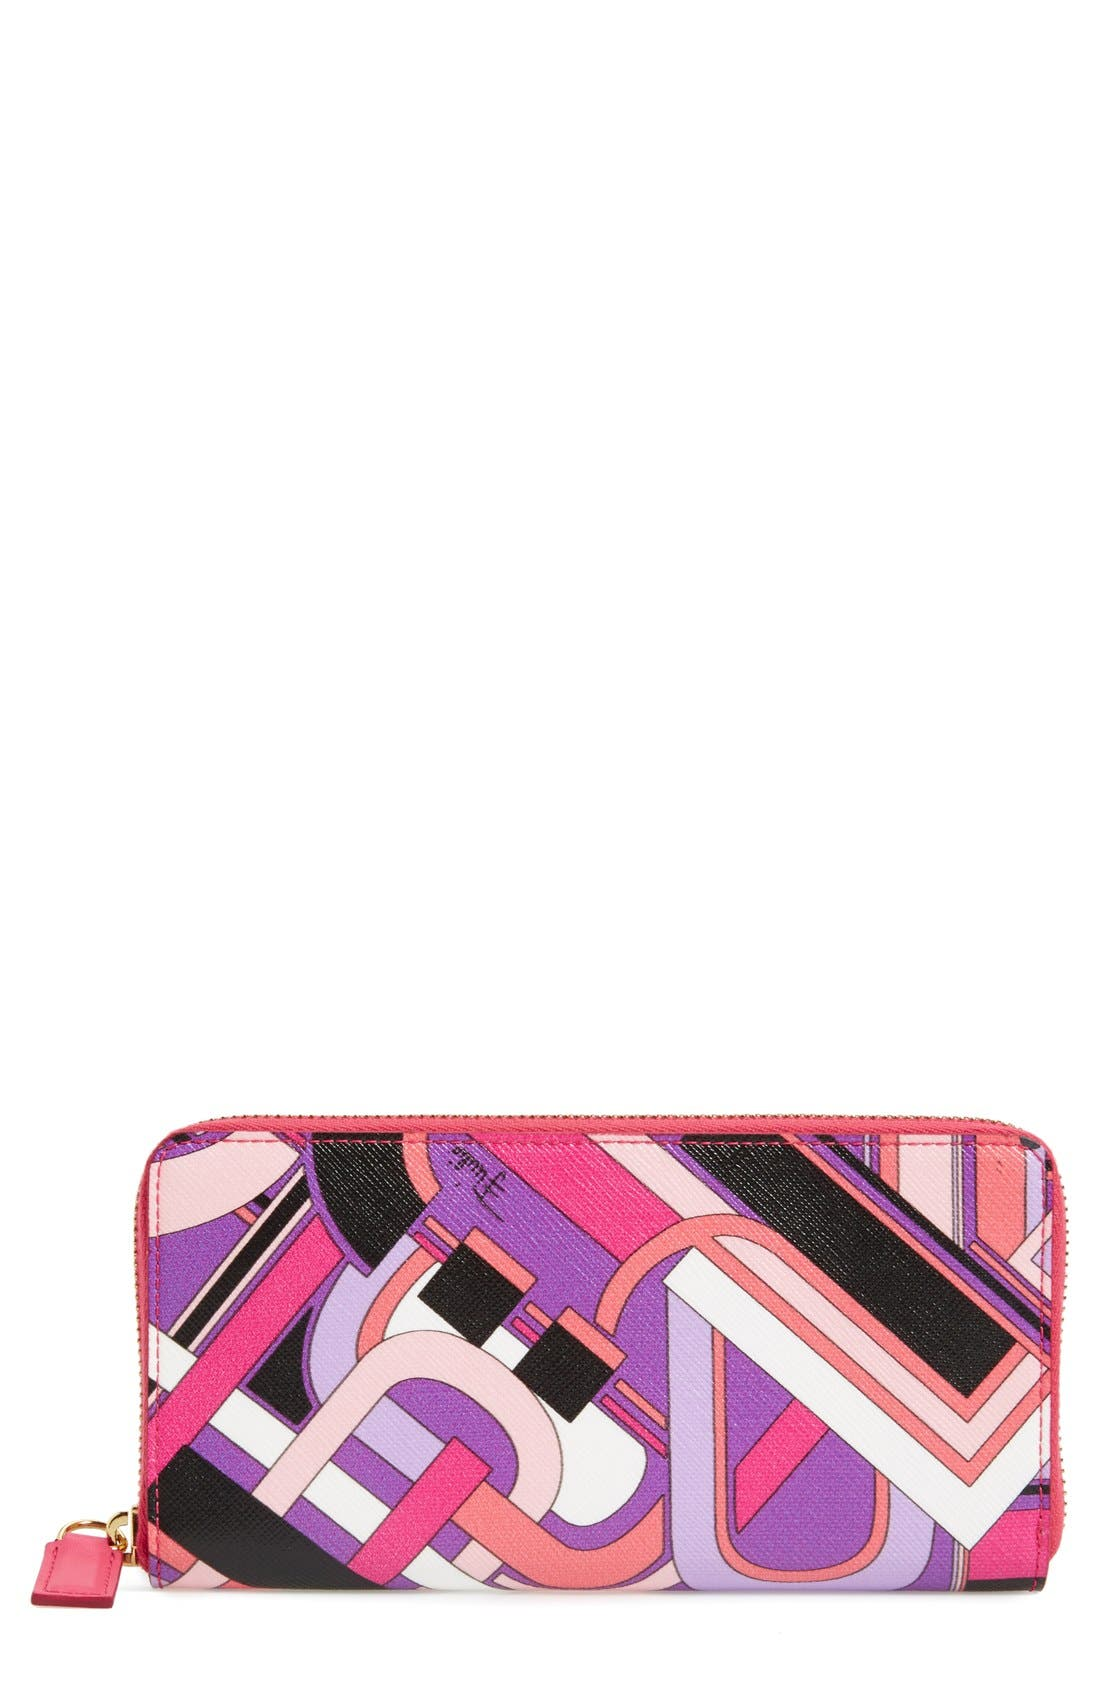 Alternate Image 1 Selected - Emilio Pucci Print Zip Around Wallet